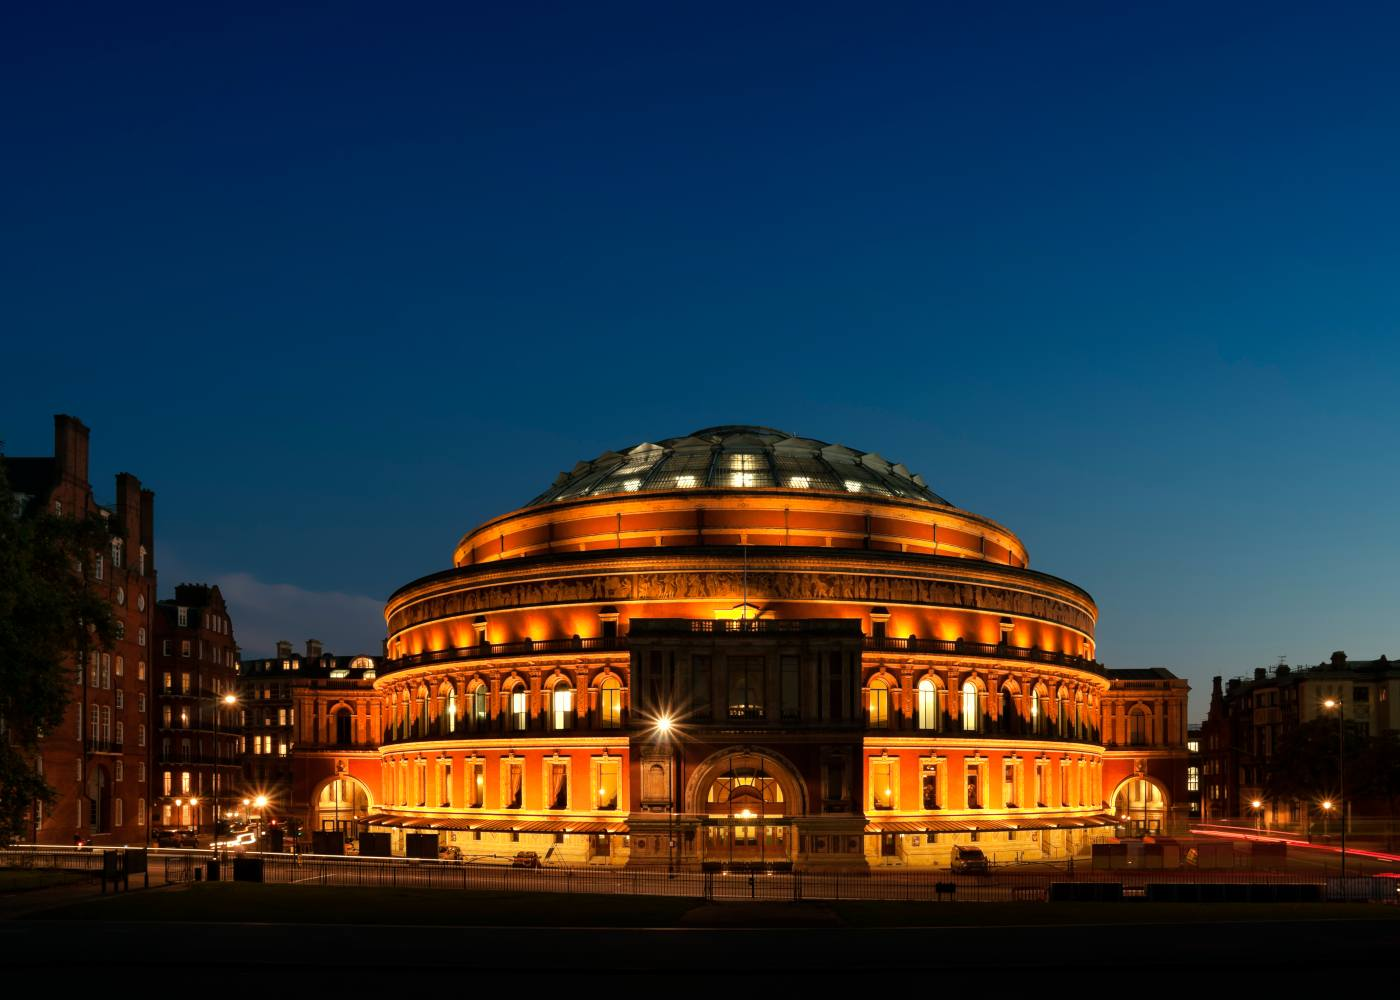 Roteiro de Londres com o Royal Albert Hall